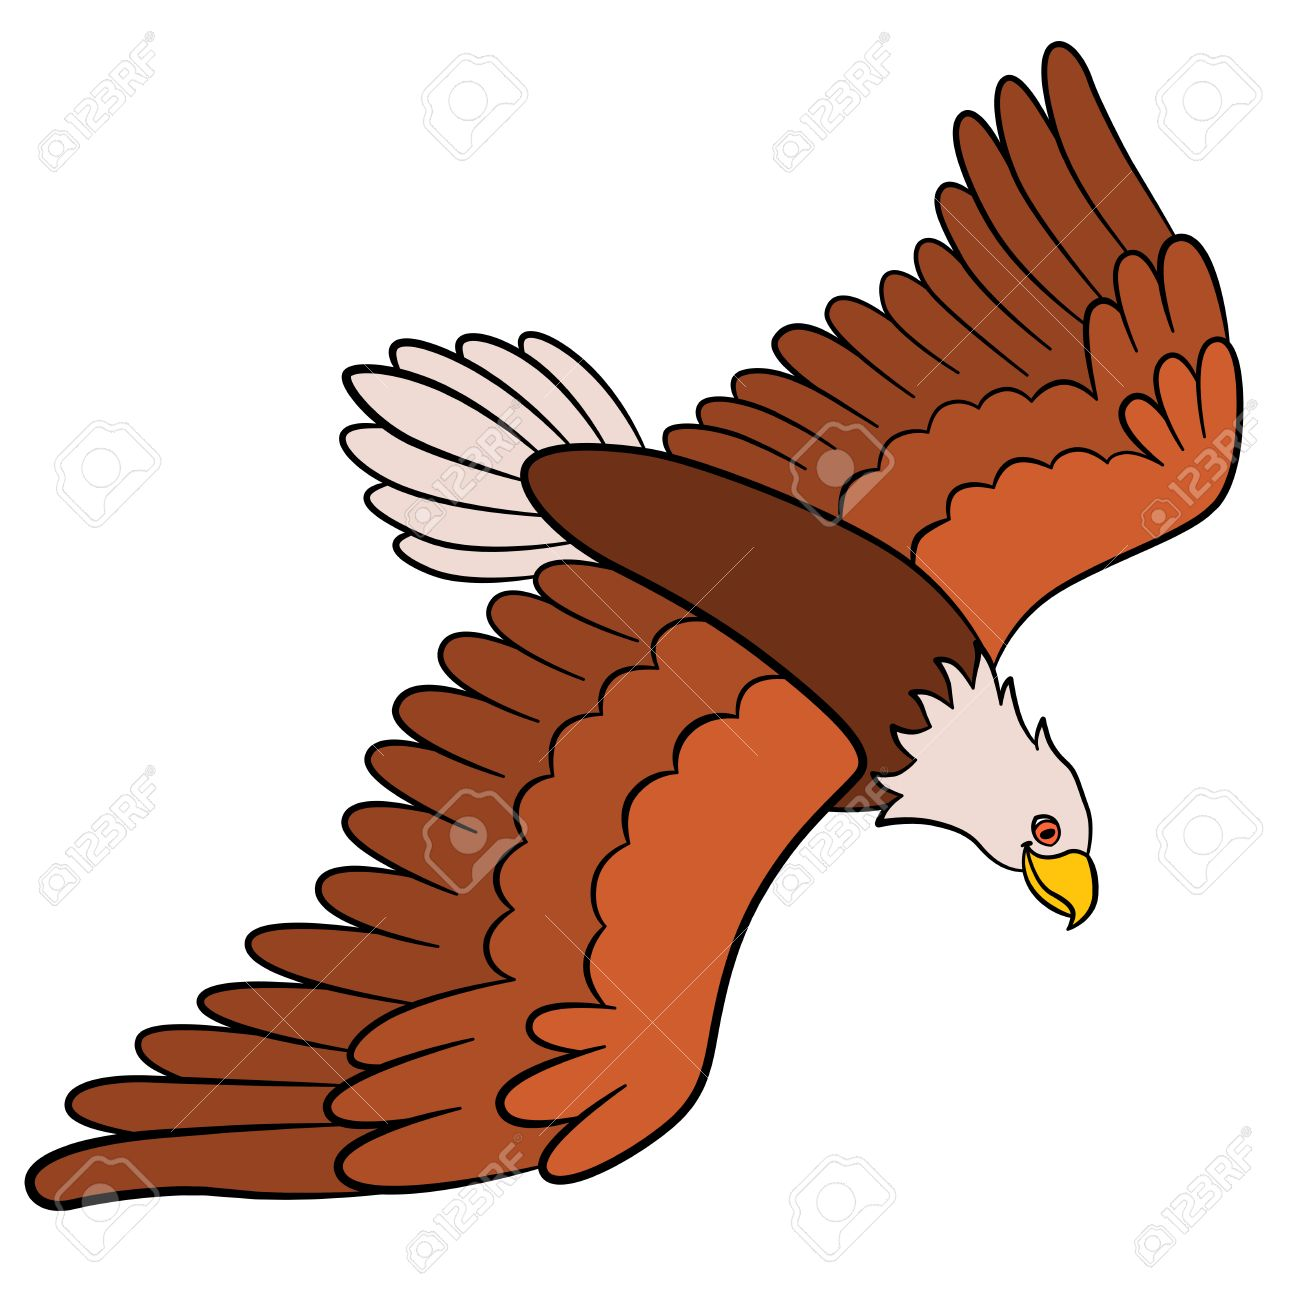 Wonderful Cartoon Birds For Kids: Eagle. Cute Bald Eagle Flies And Smiles. Stock  Vector